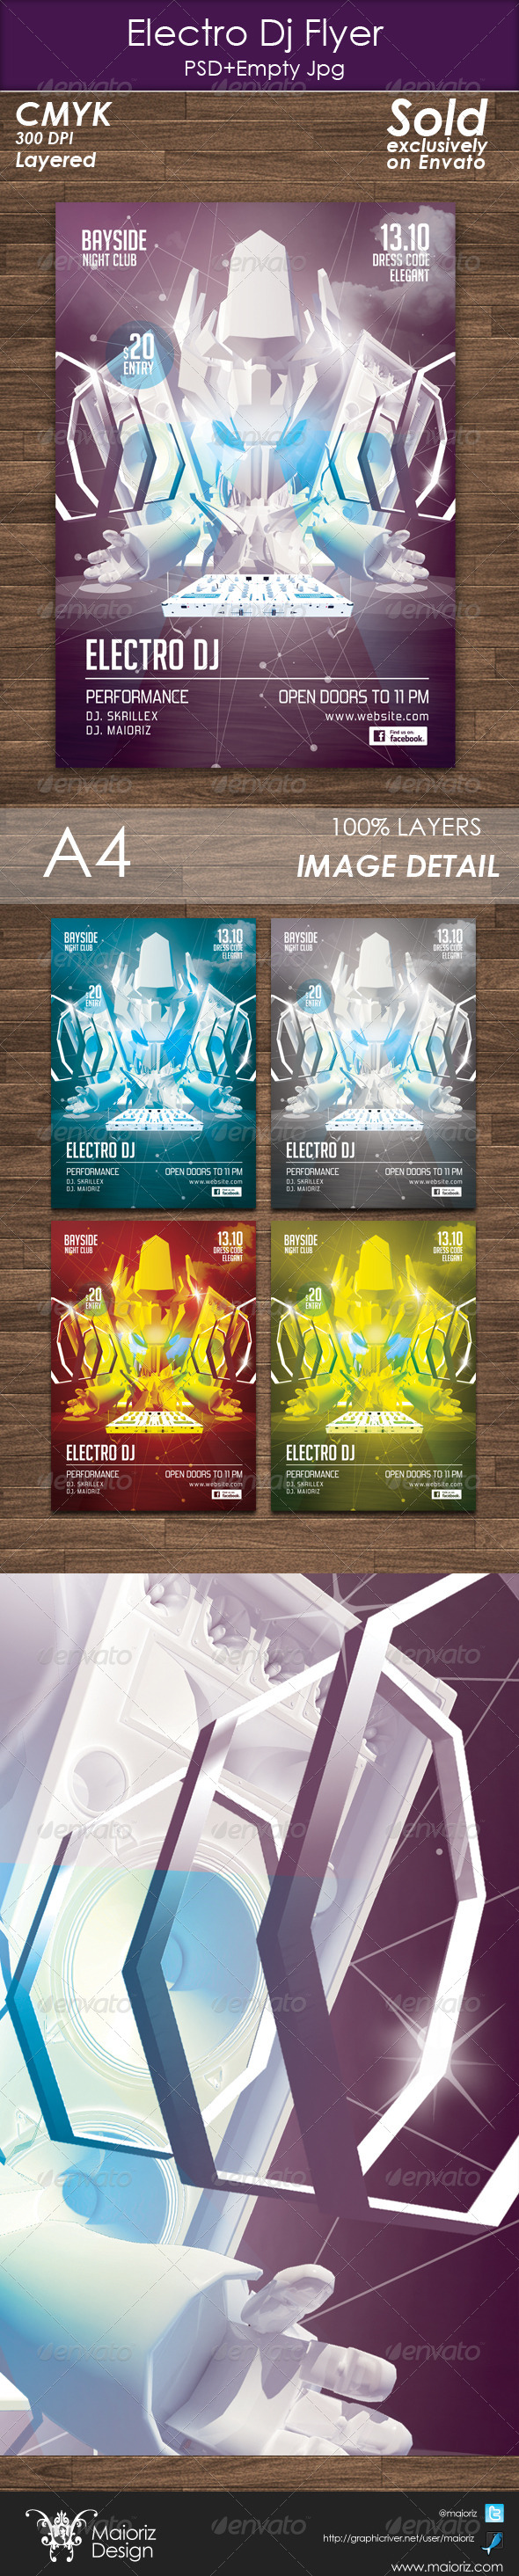 Electro Dj Flyer Template - Clubs & Parties Events